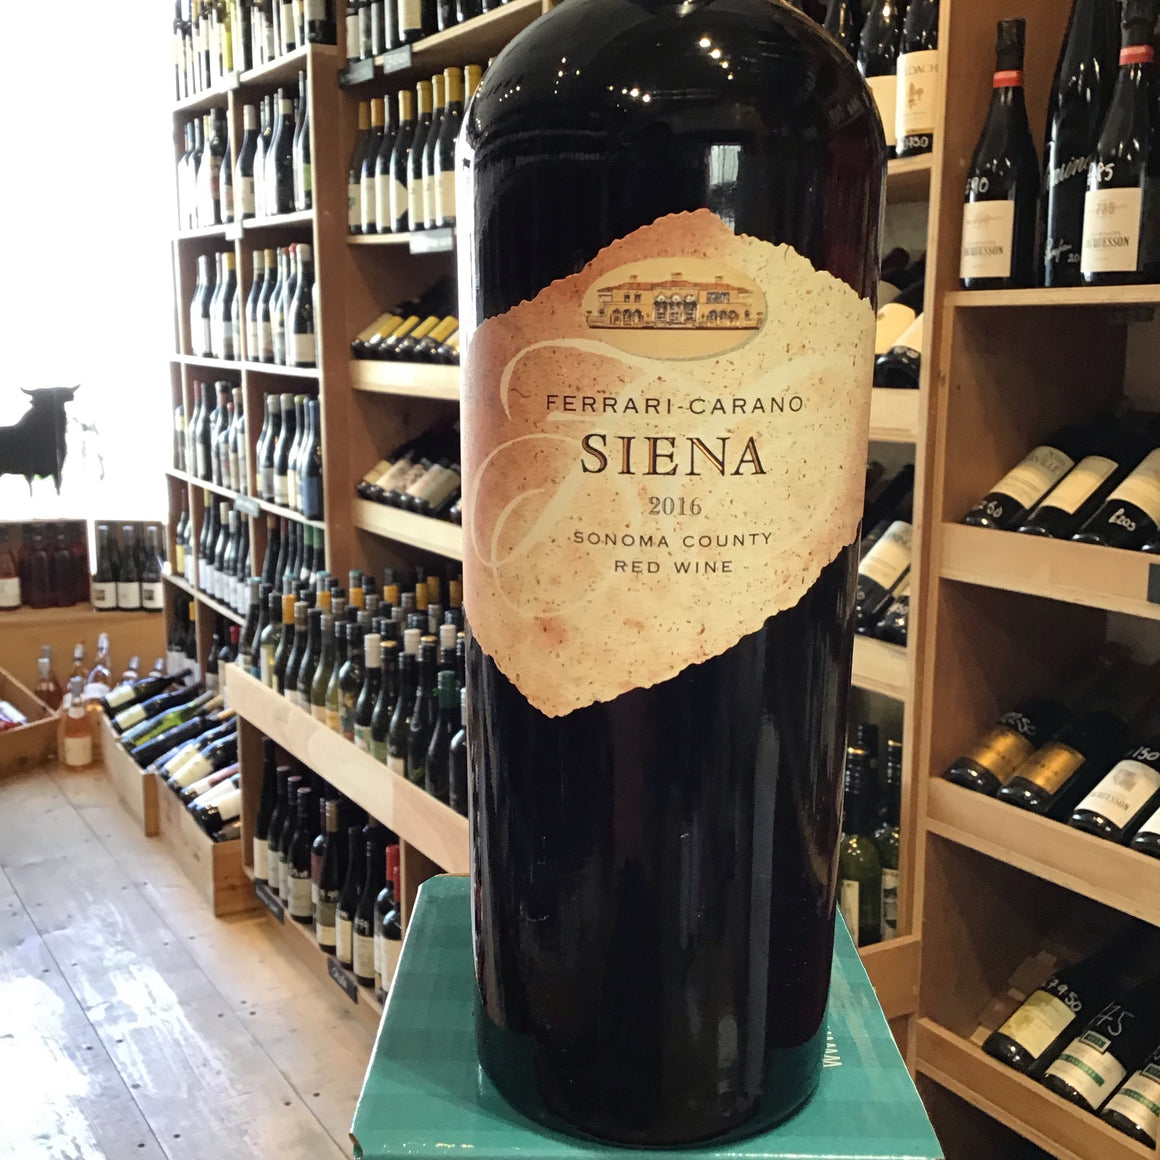 Ferrari-Carano Siena, Red Wine, 2016 - Butlers Wine Cellar Brighton